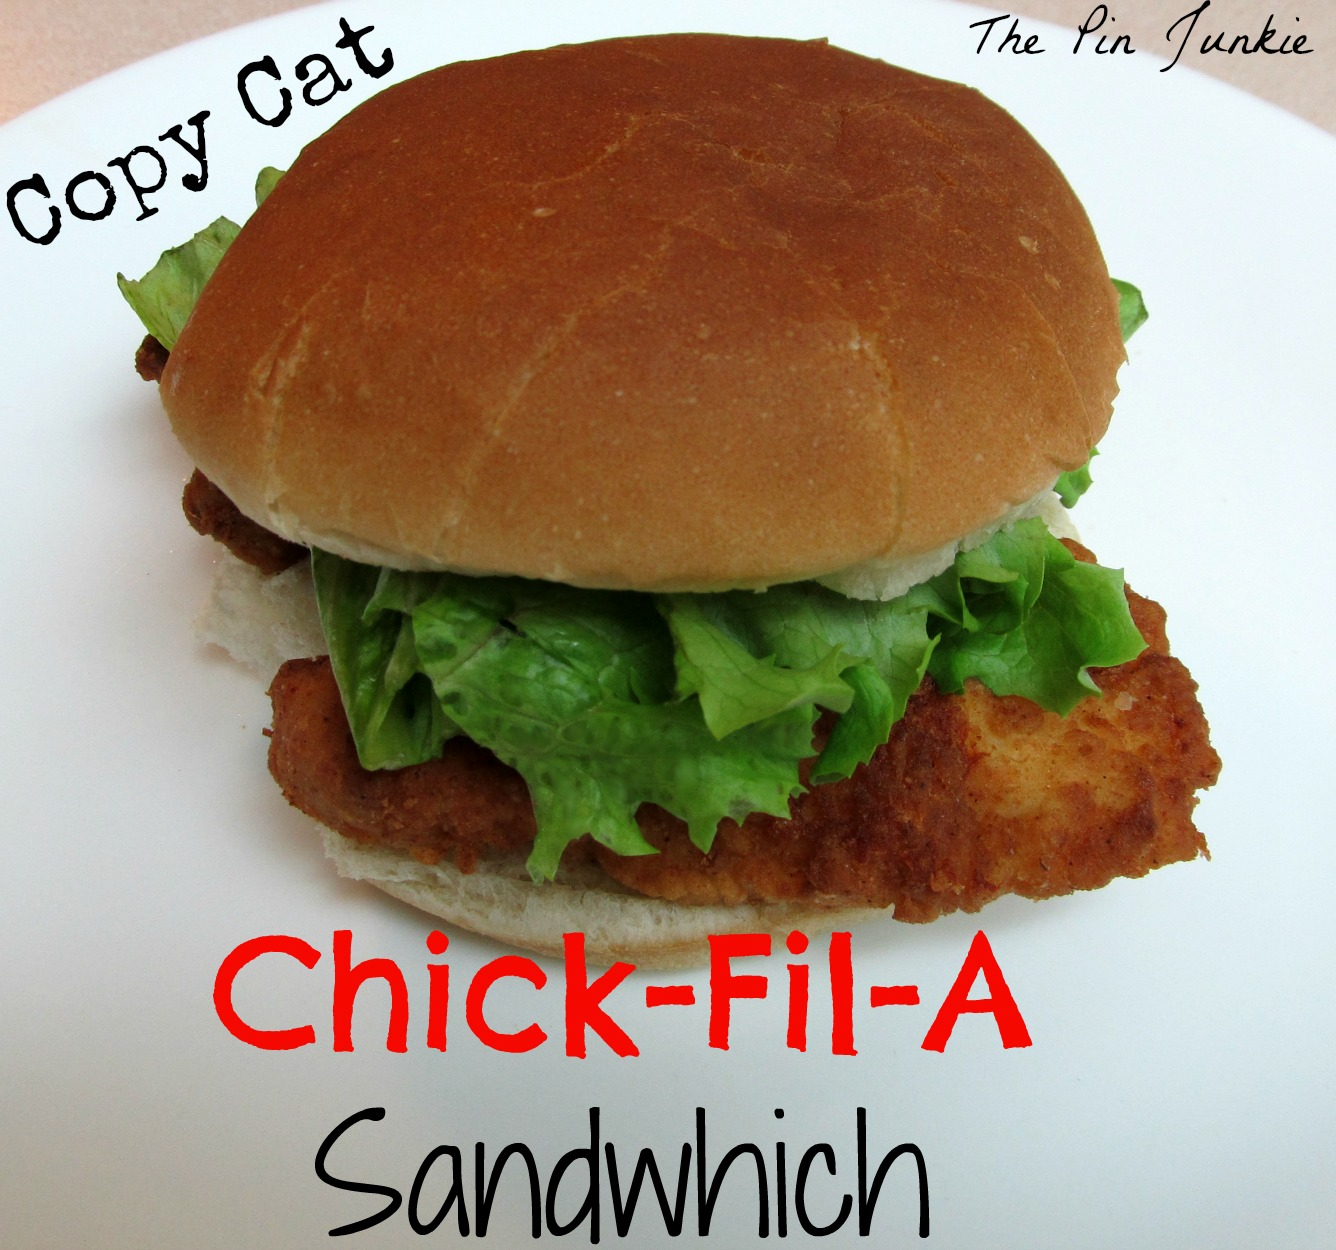 chick-fil-a chicken-sandwich recipe